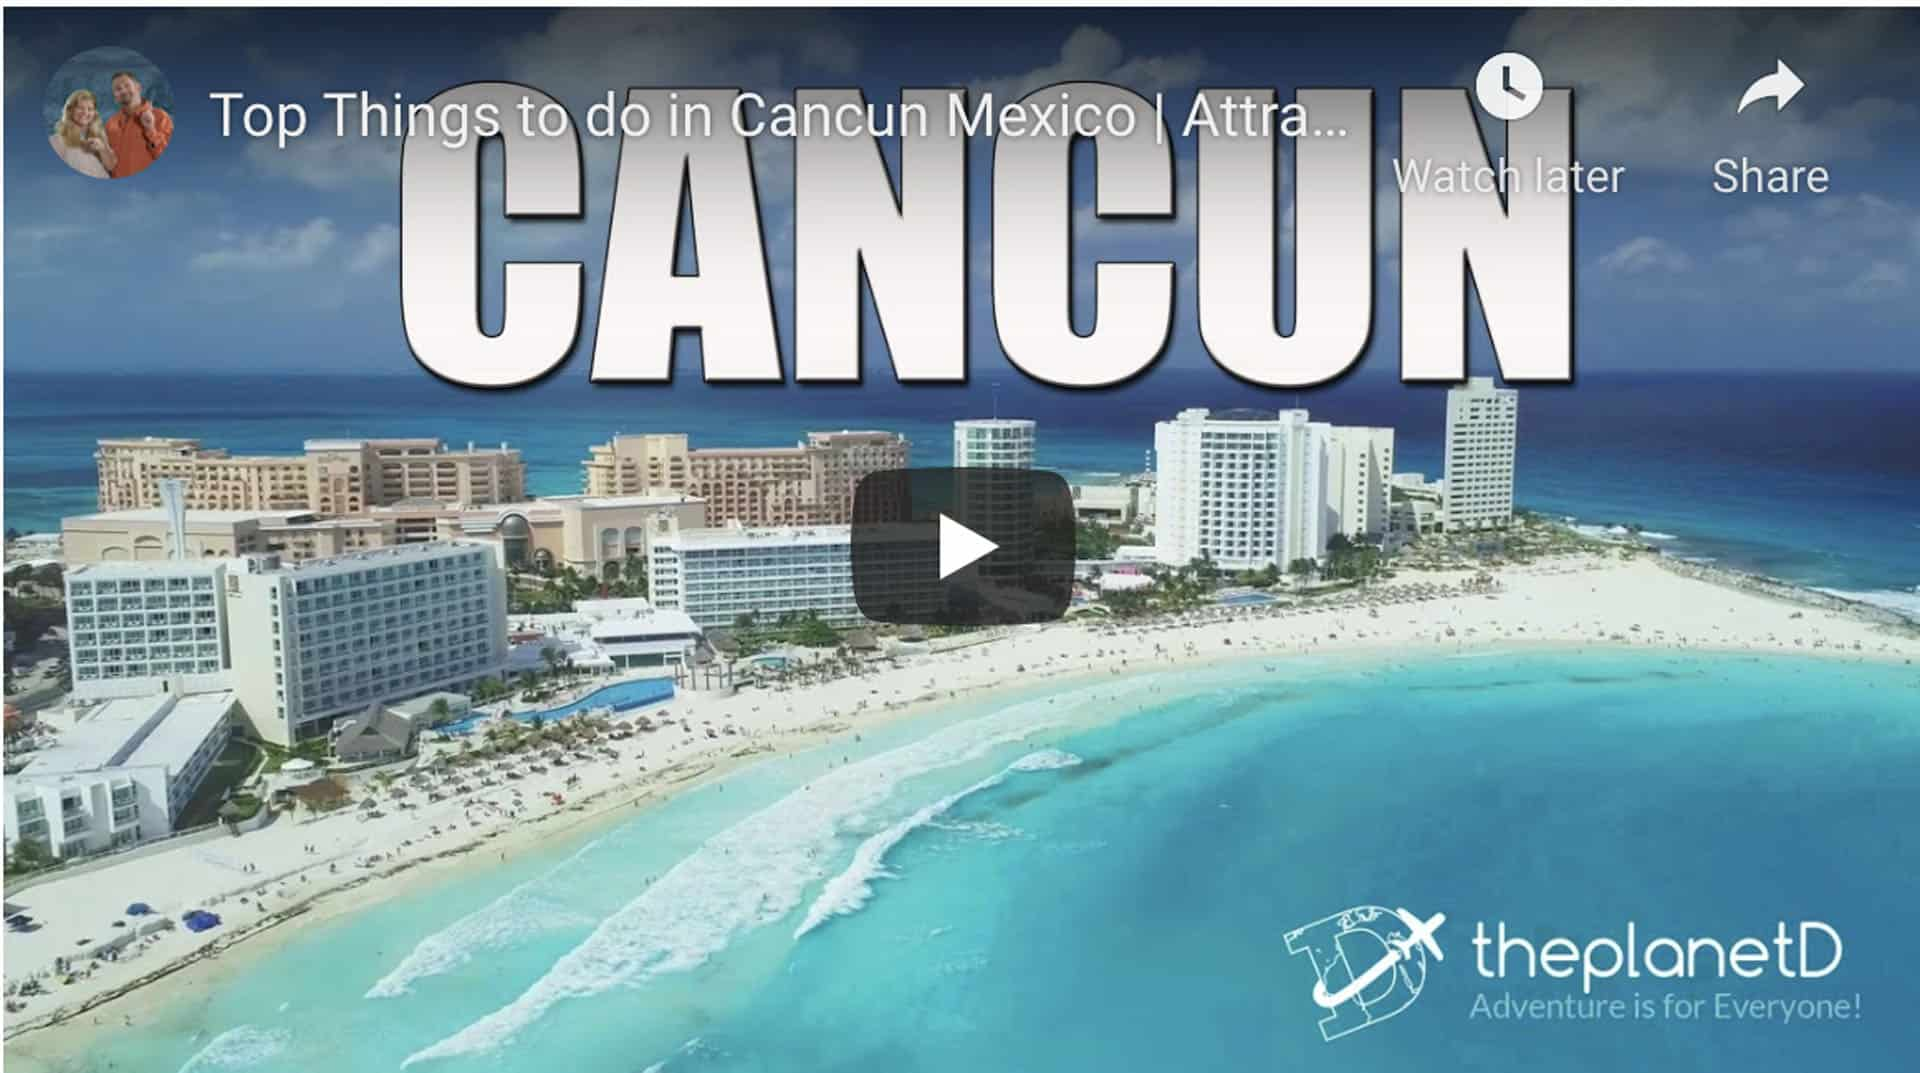 the best things to do in cancun video